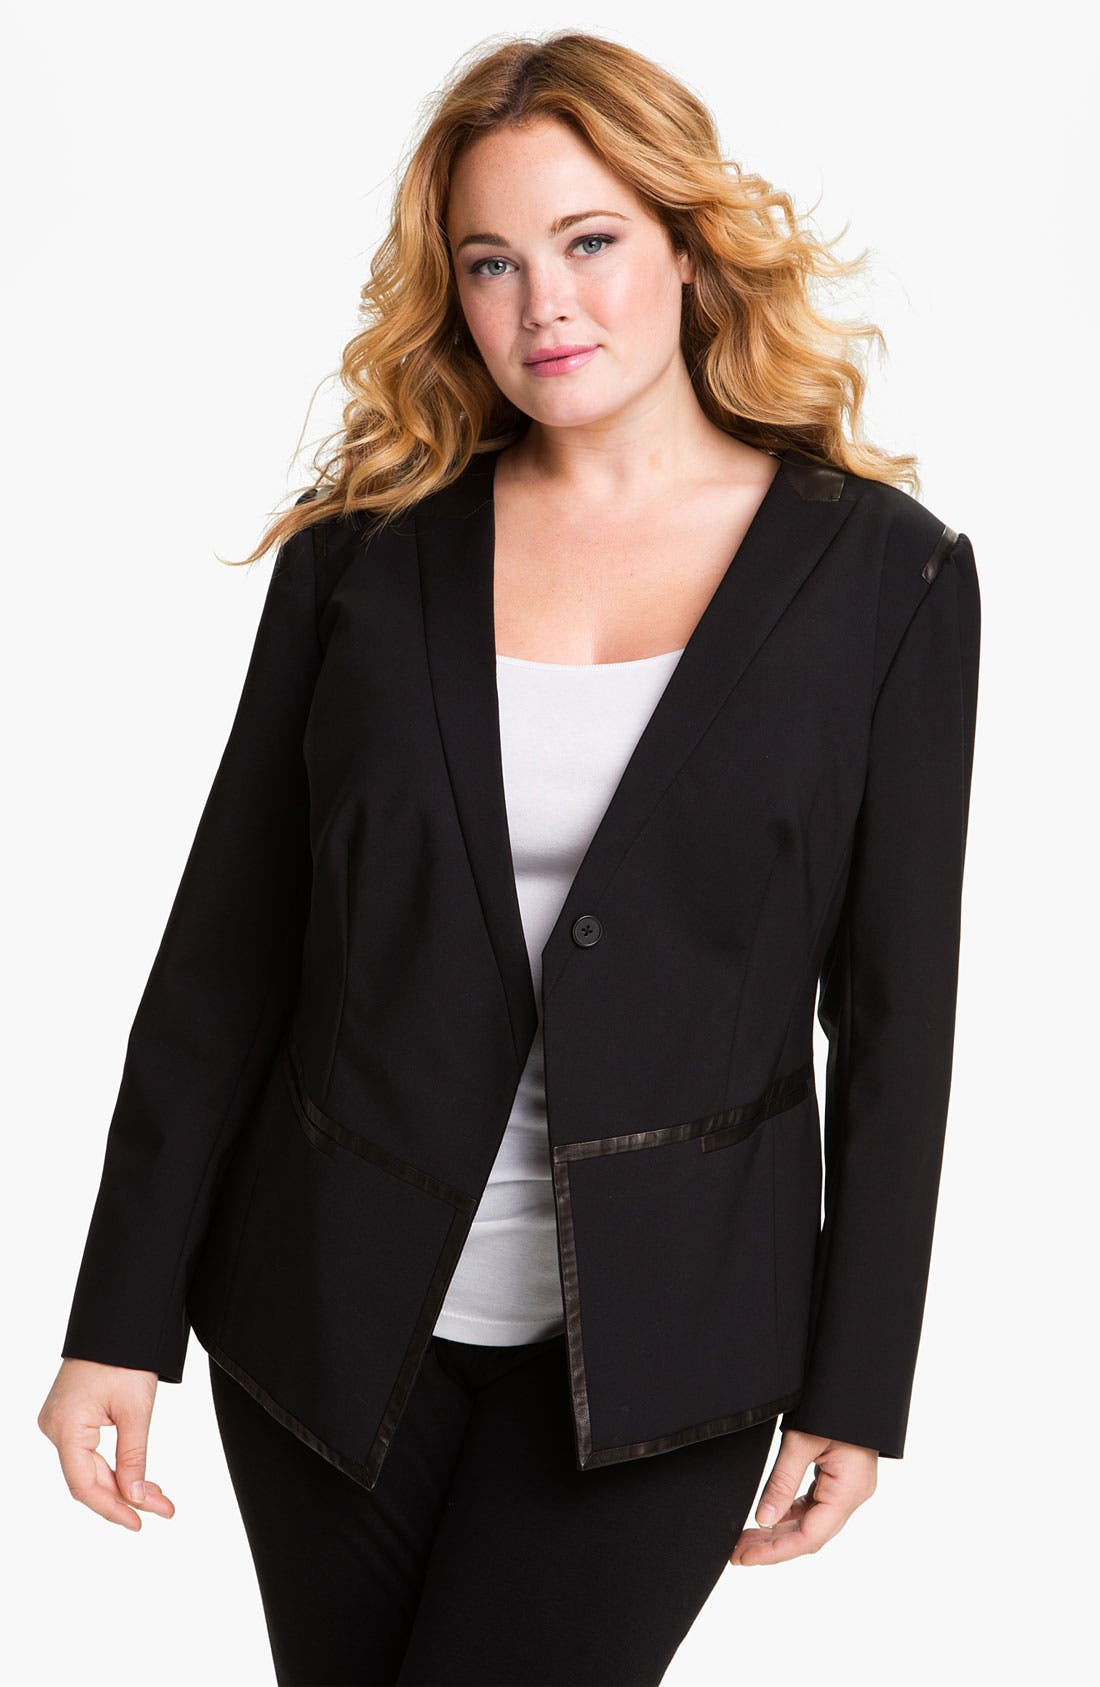 Alternate Image 1 Selected - Kenneth Cole New York 'Riley' Faux Leather Trim Blazer (Plus)